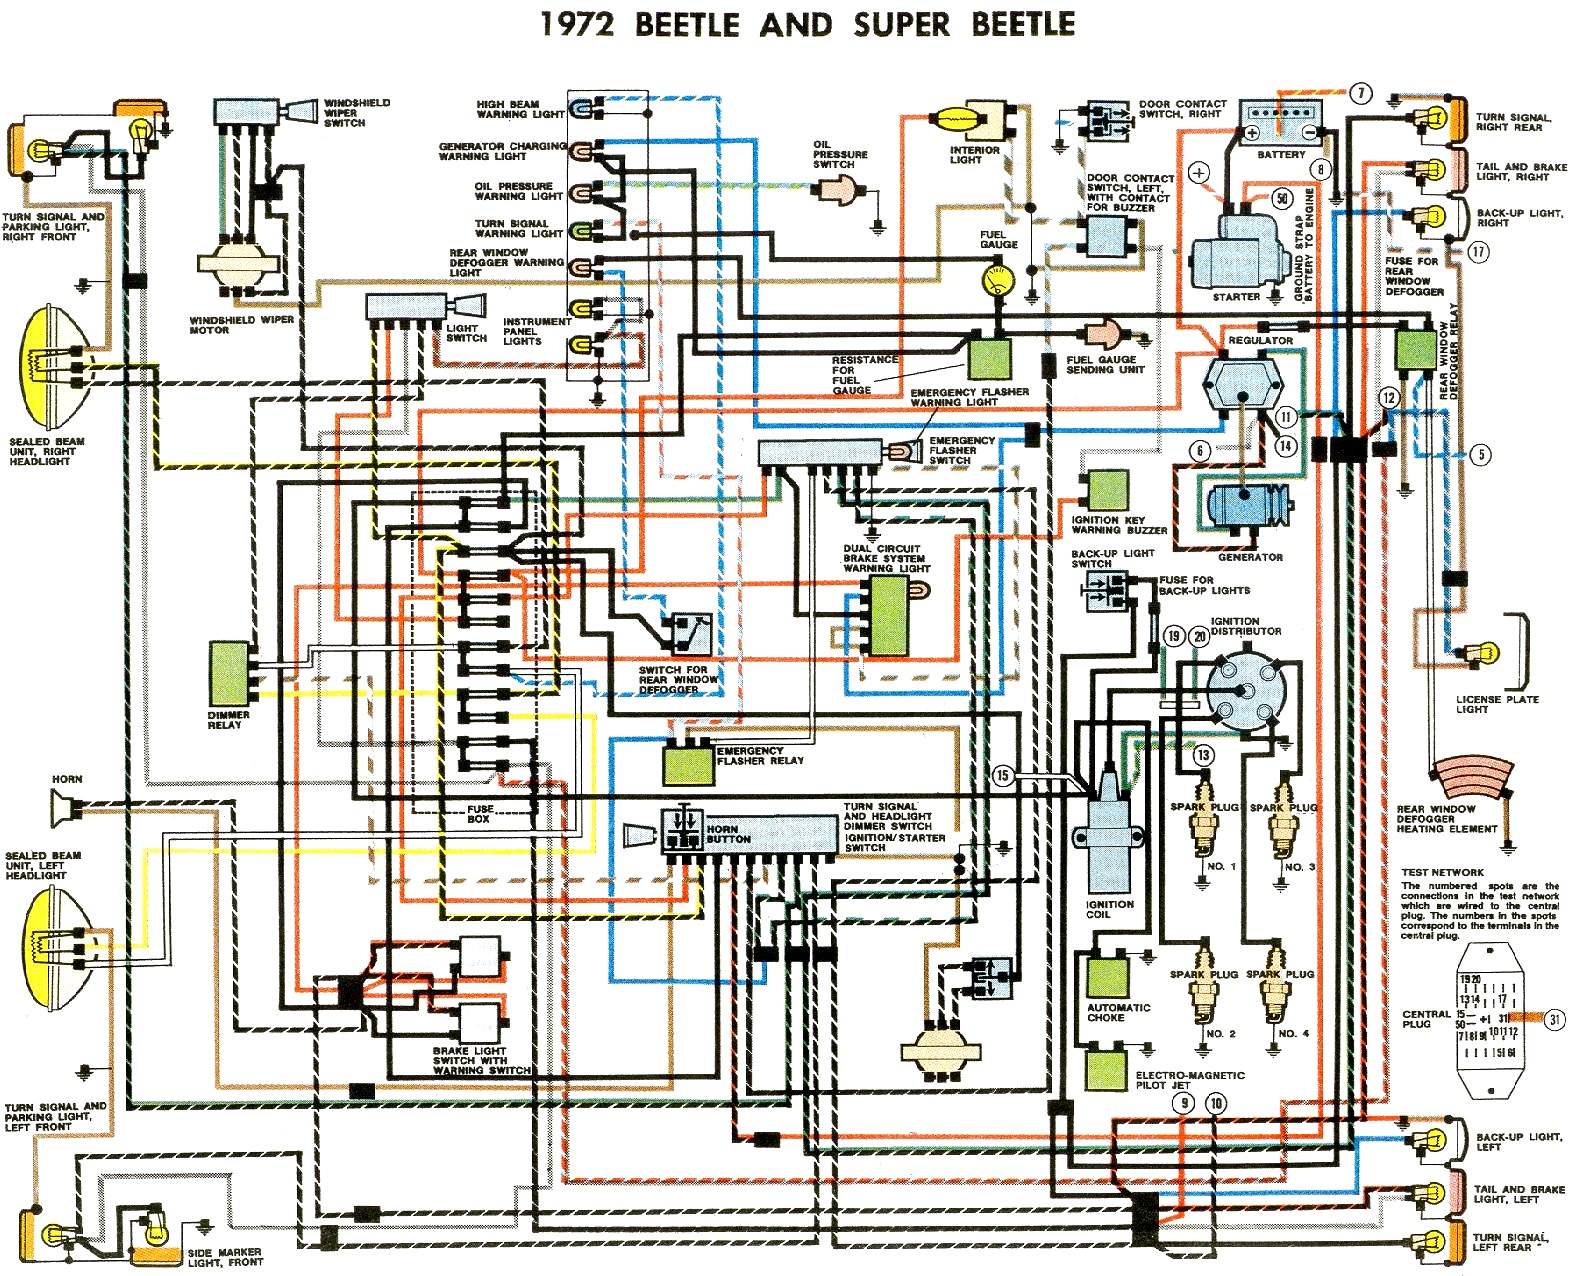 bug_72 1972 beetle wiring diagram thegoldenbug com 1978 vw bus fuse box diagram at love-stories.co